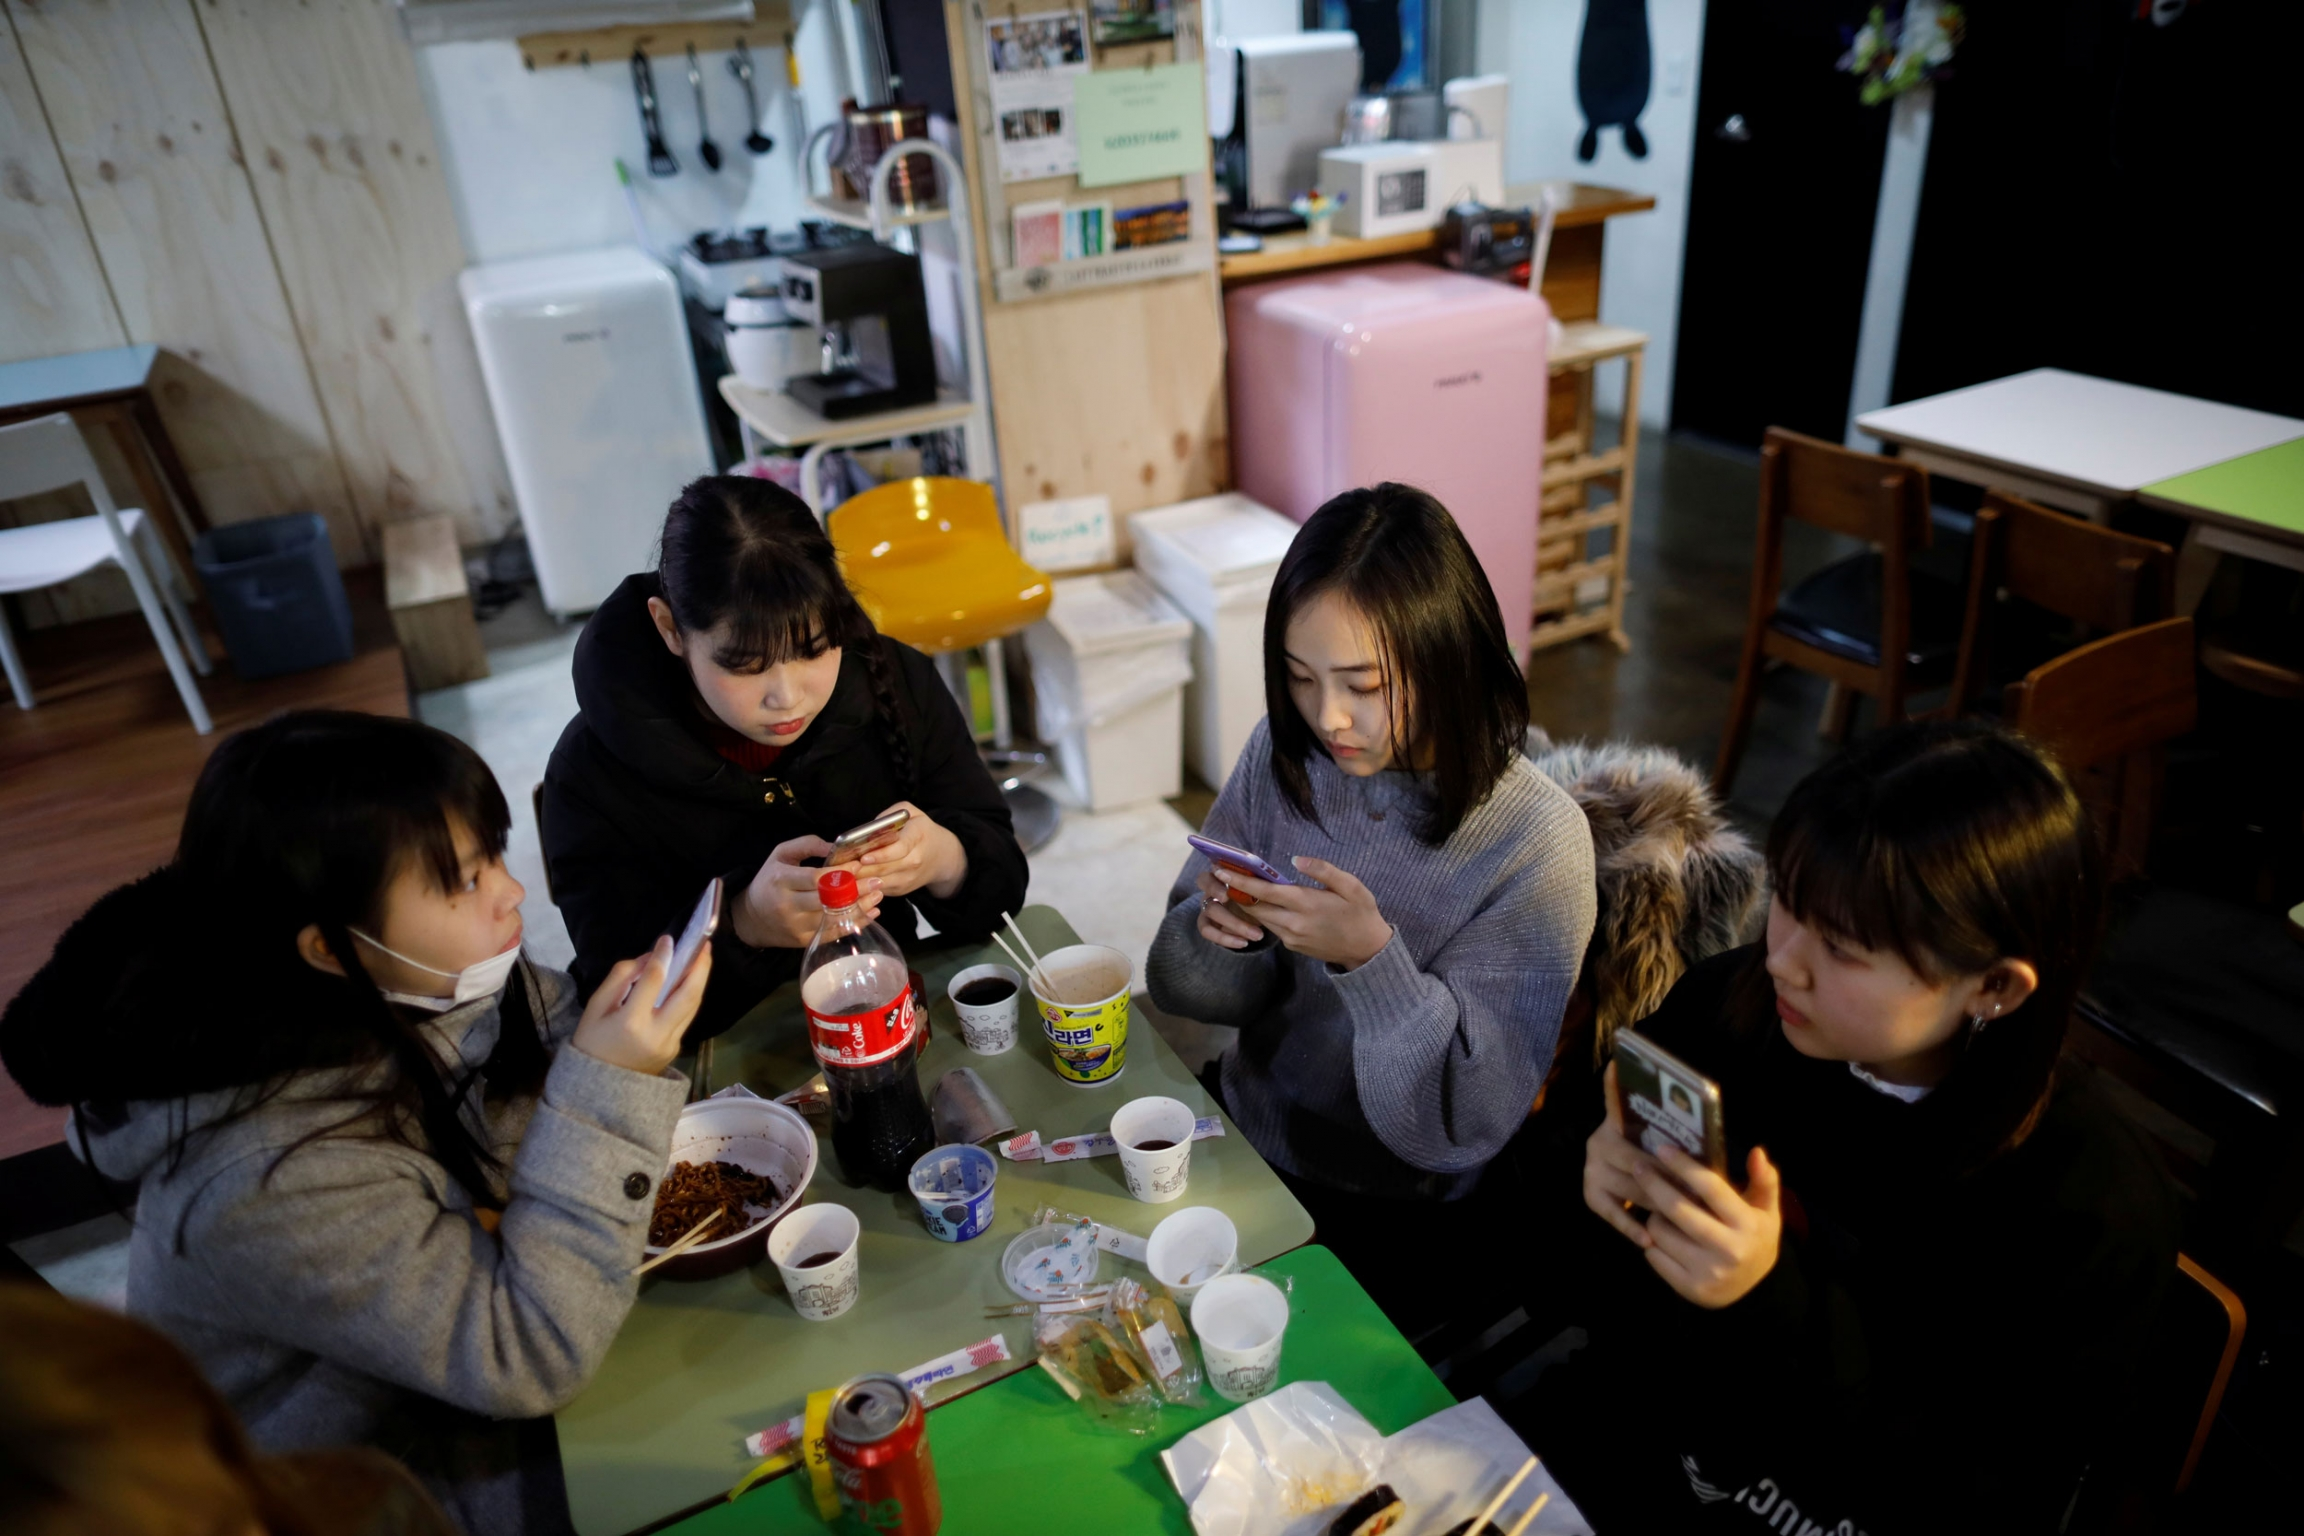 Four young women are shown sitting around two small green tables, all of them with a mobile phone.